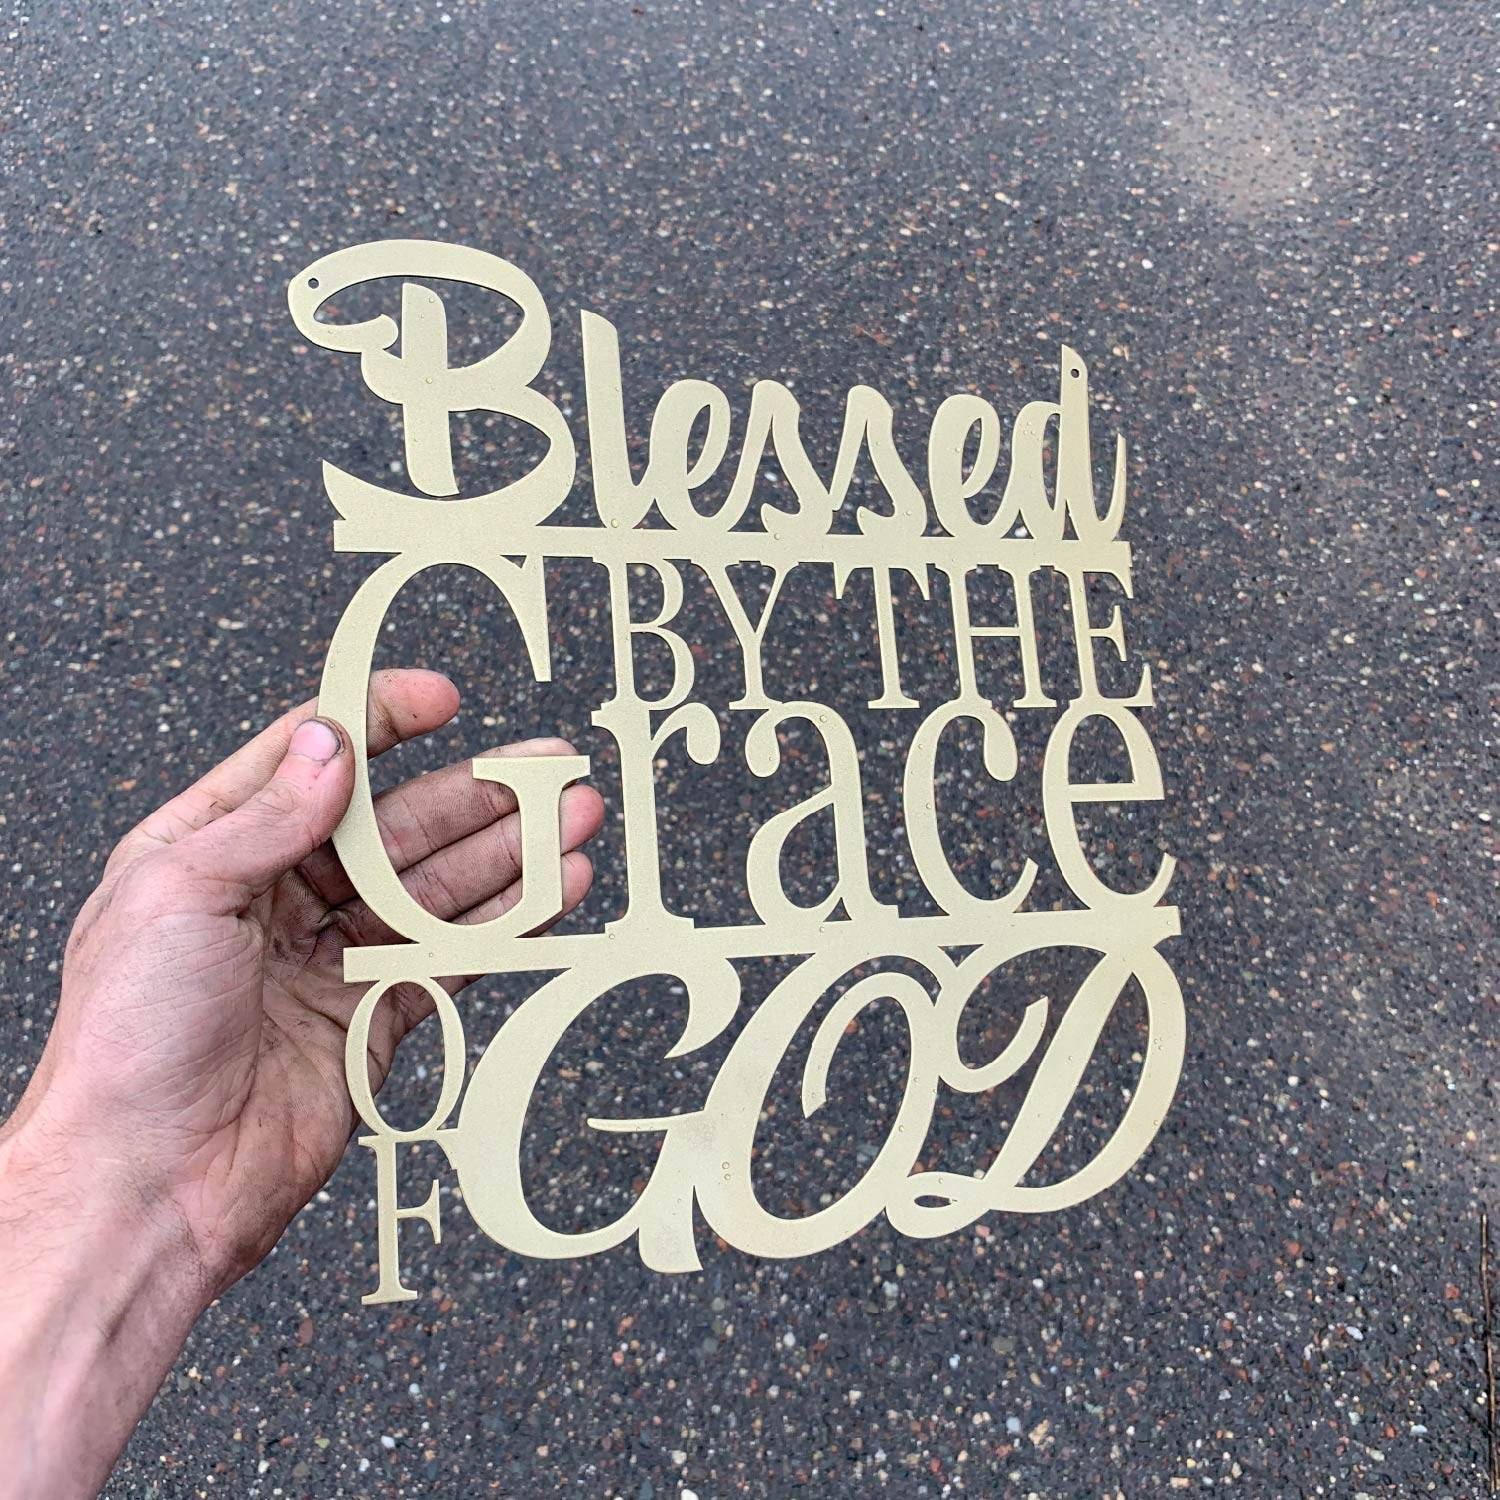 Blessed By The Grace of God - Steel Wall Sign